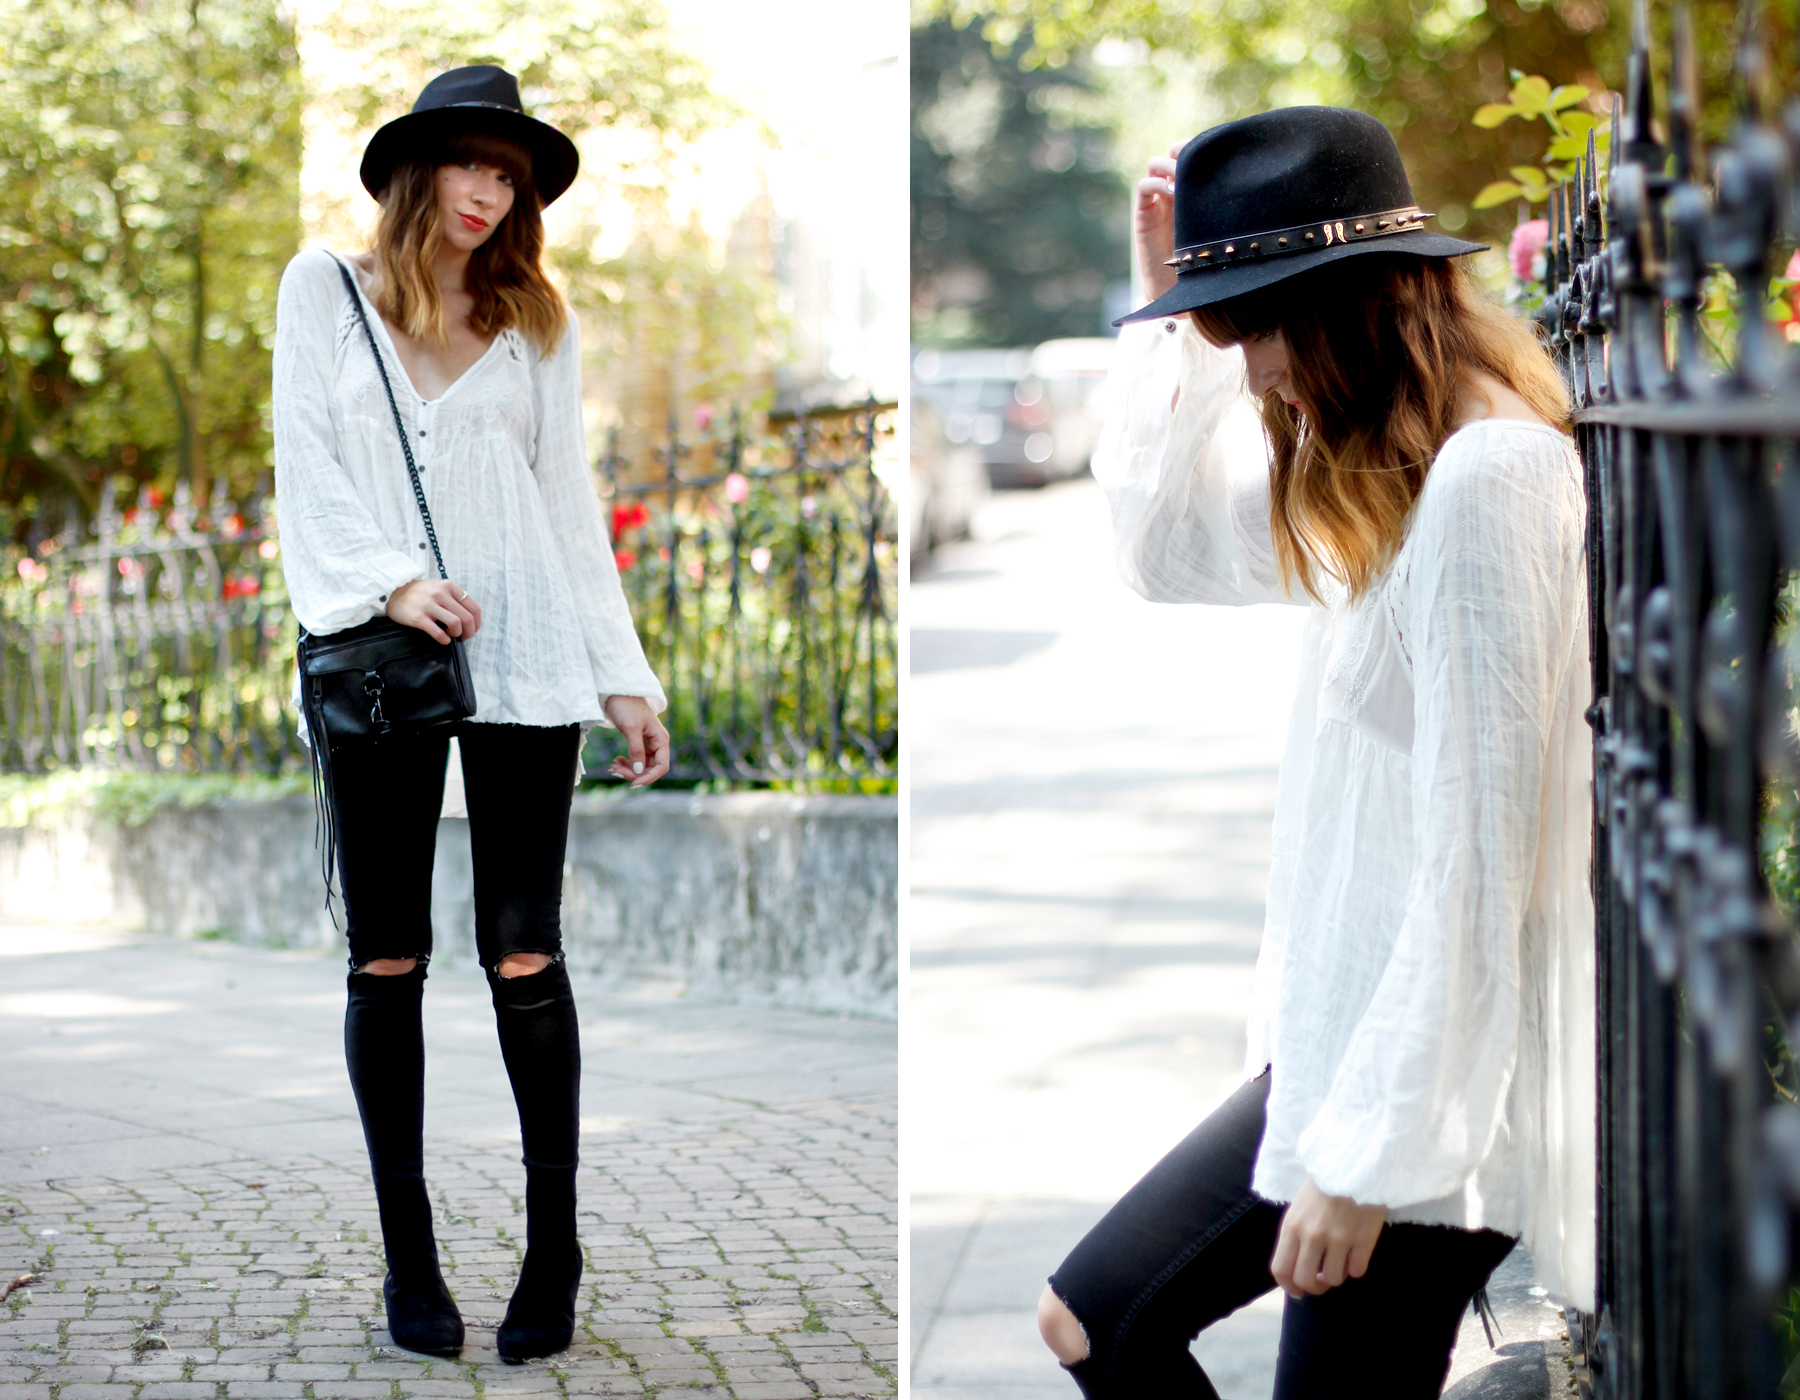 outfit hippie blouse shopbop ash booties berenice hat rebecca minkoff bag autumn fall look black and white cats & dogs fashion blog düsseldorf hannover ootd ricarda schernus blog 4